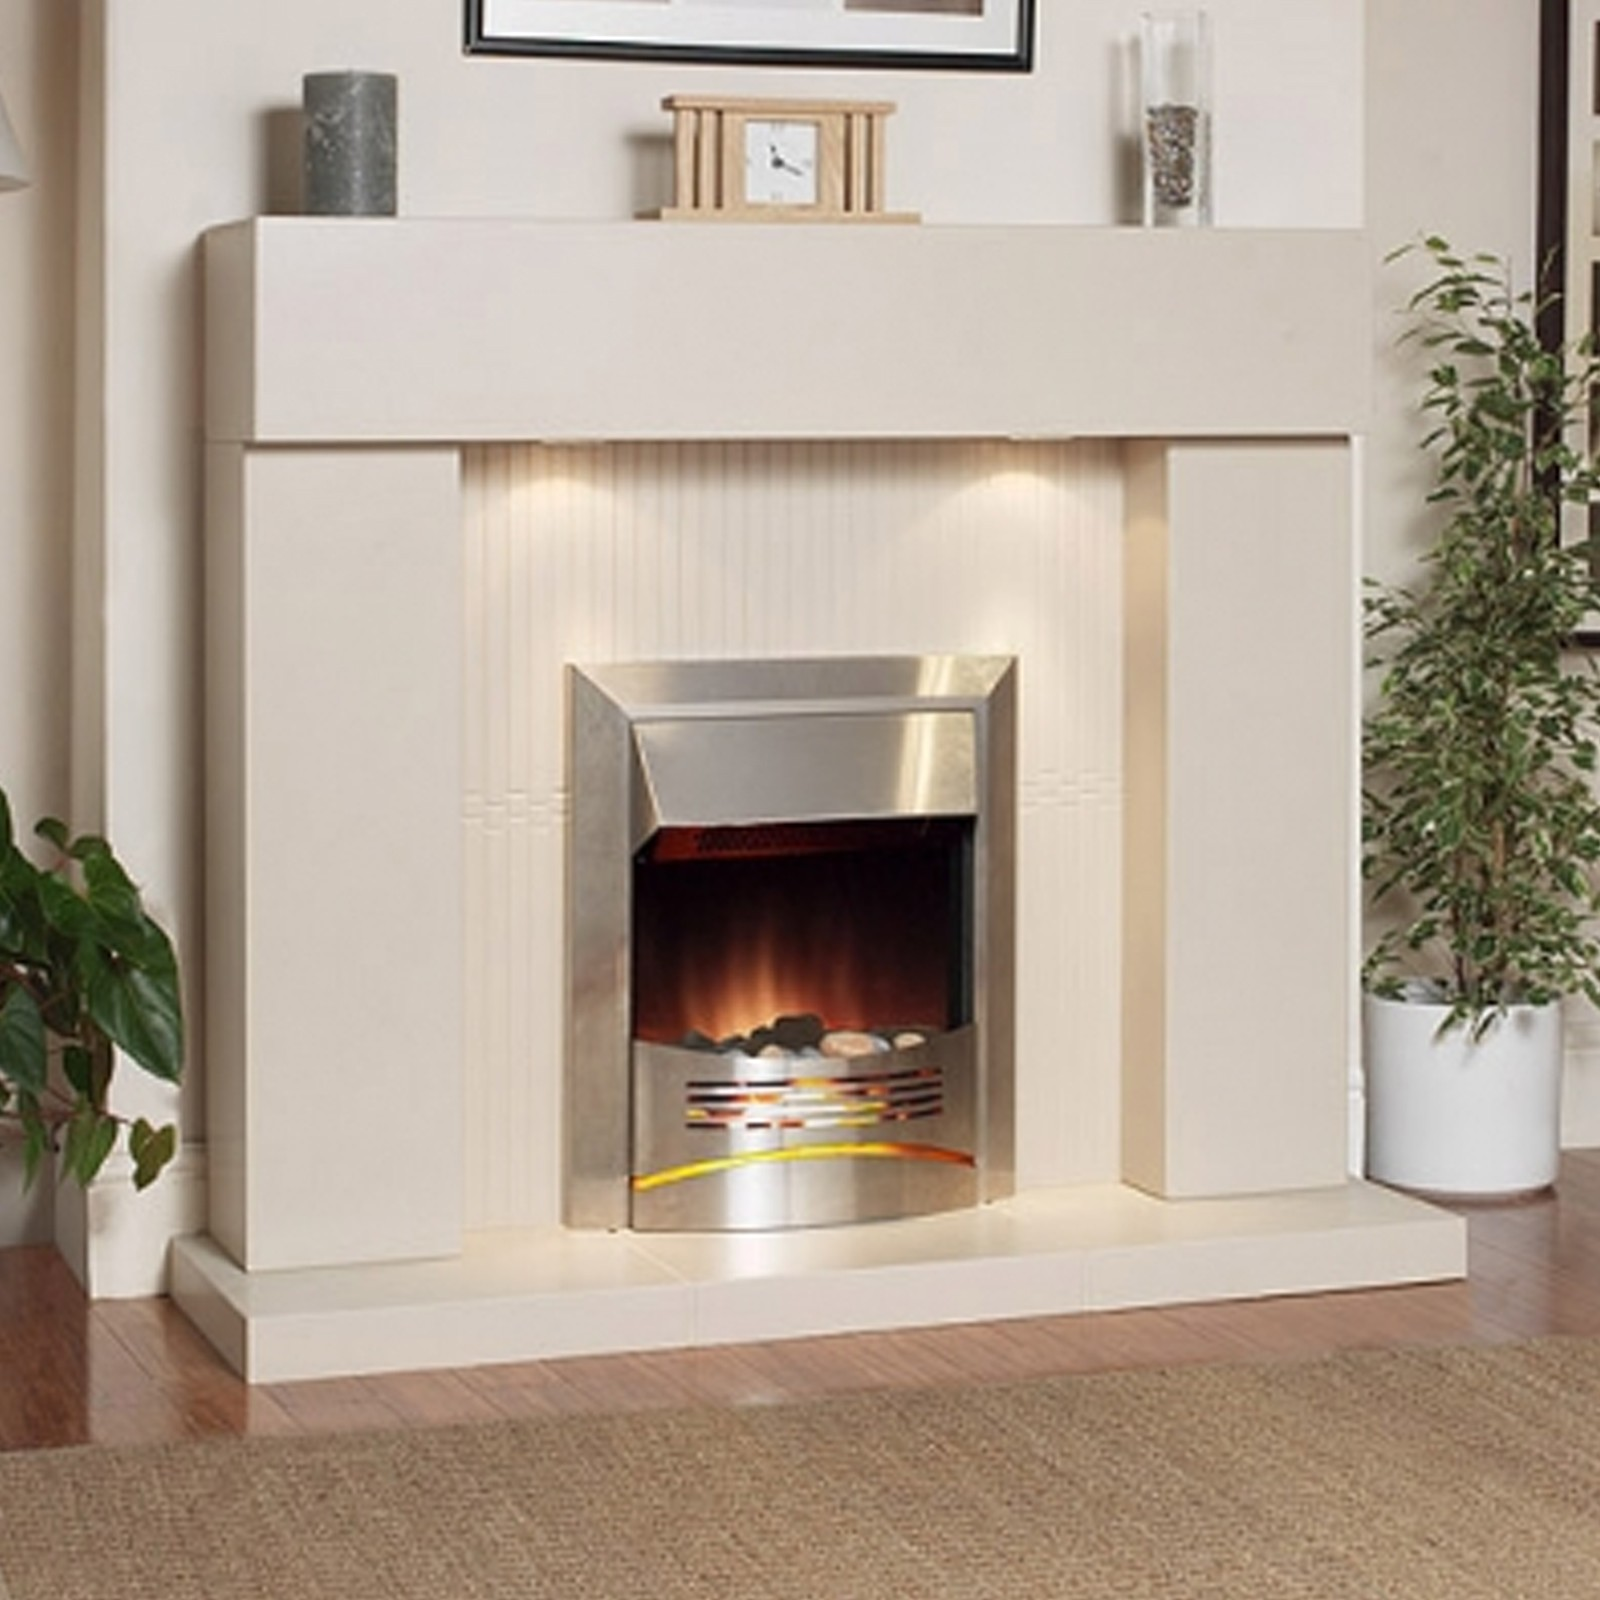 Outstanding Katell Durban Electric Fireplace Suite Home Interior And Landscaping Fragforummapetitesourisinfo